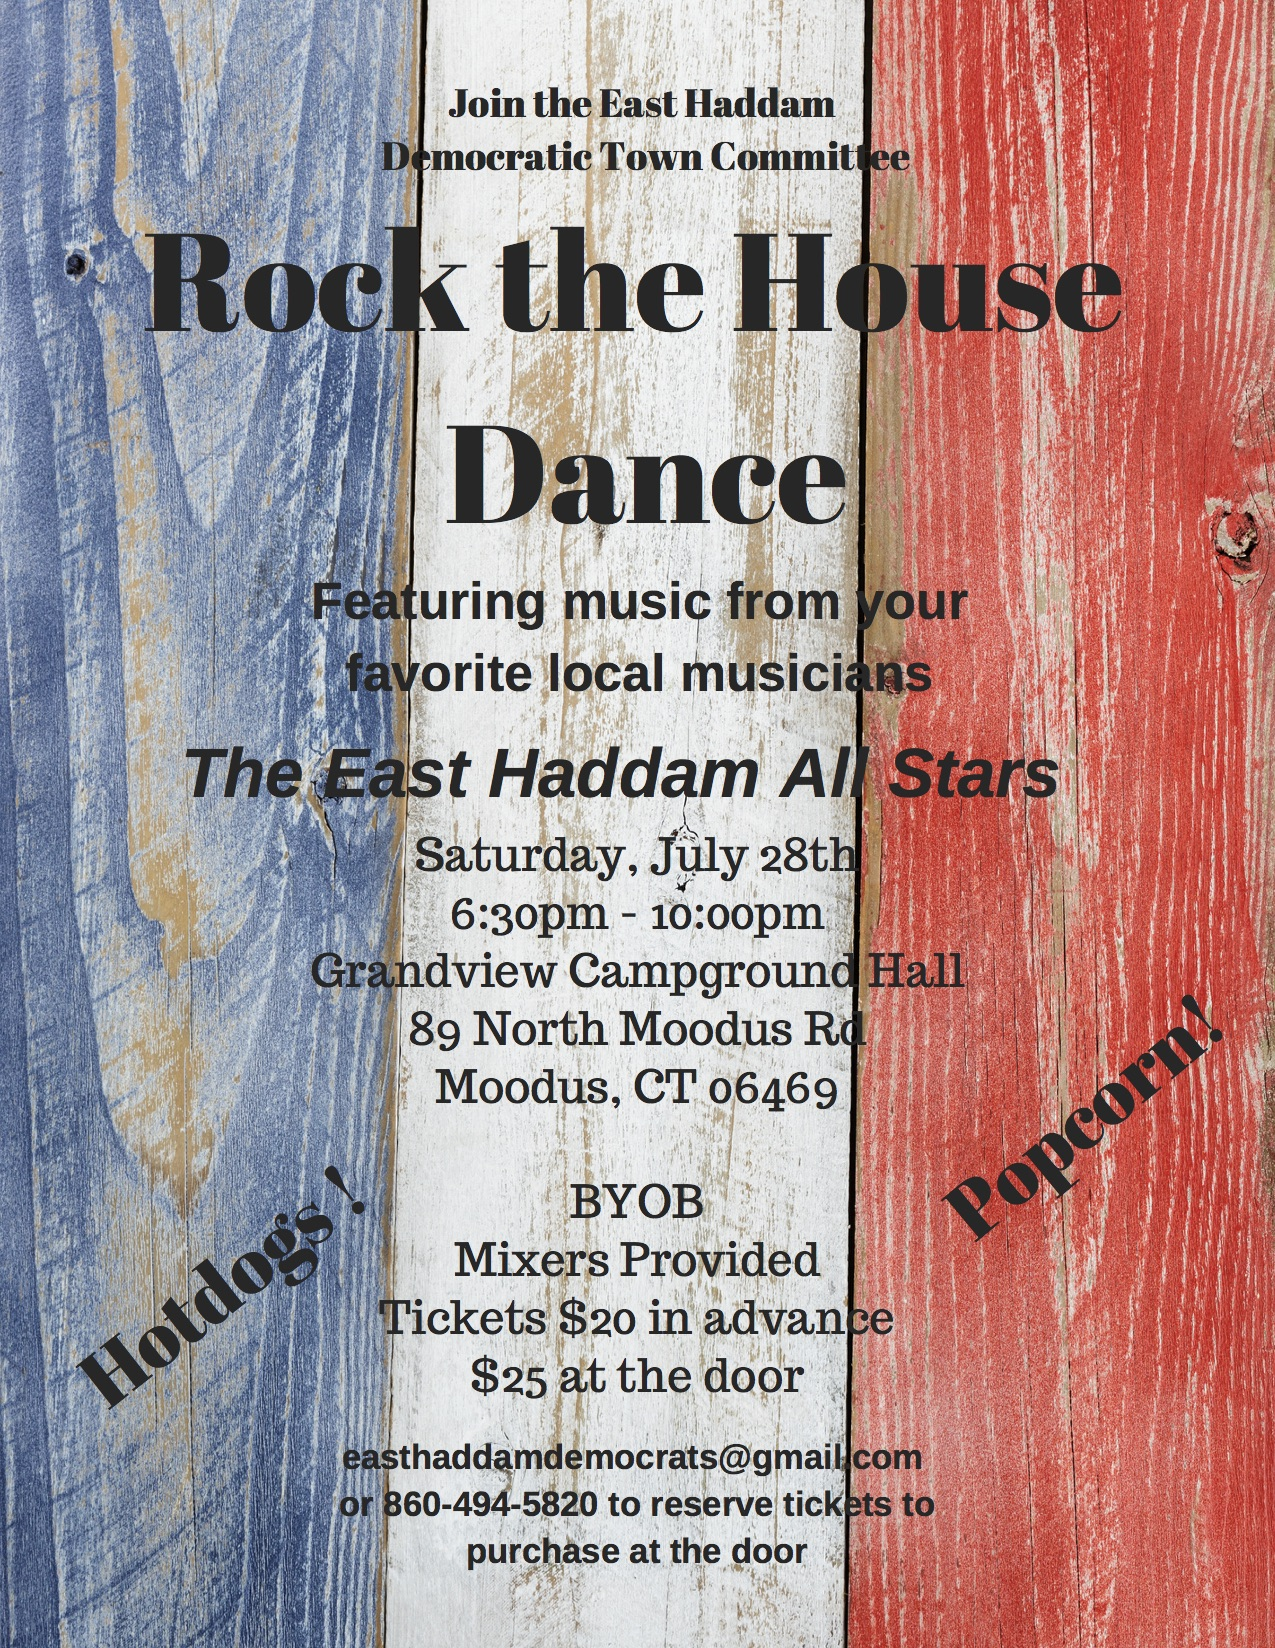 Rock the House Dance w food poster.jpg